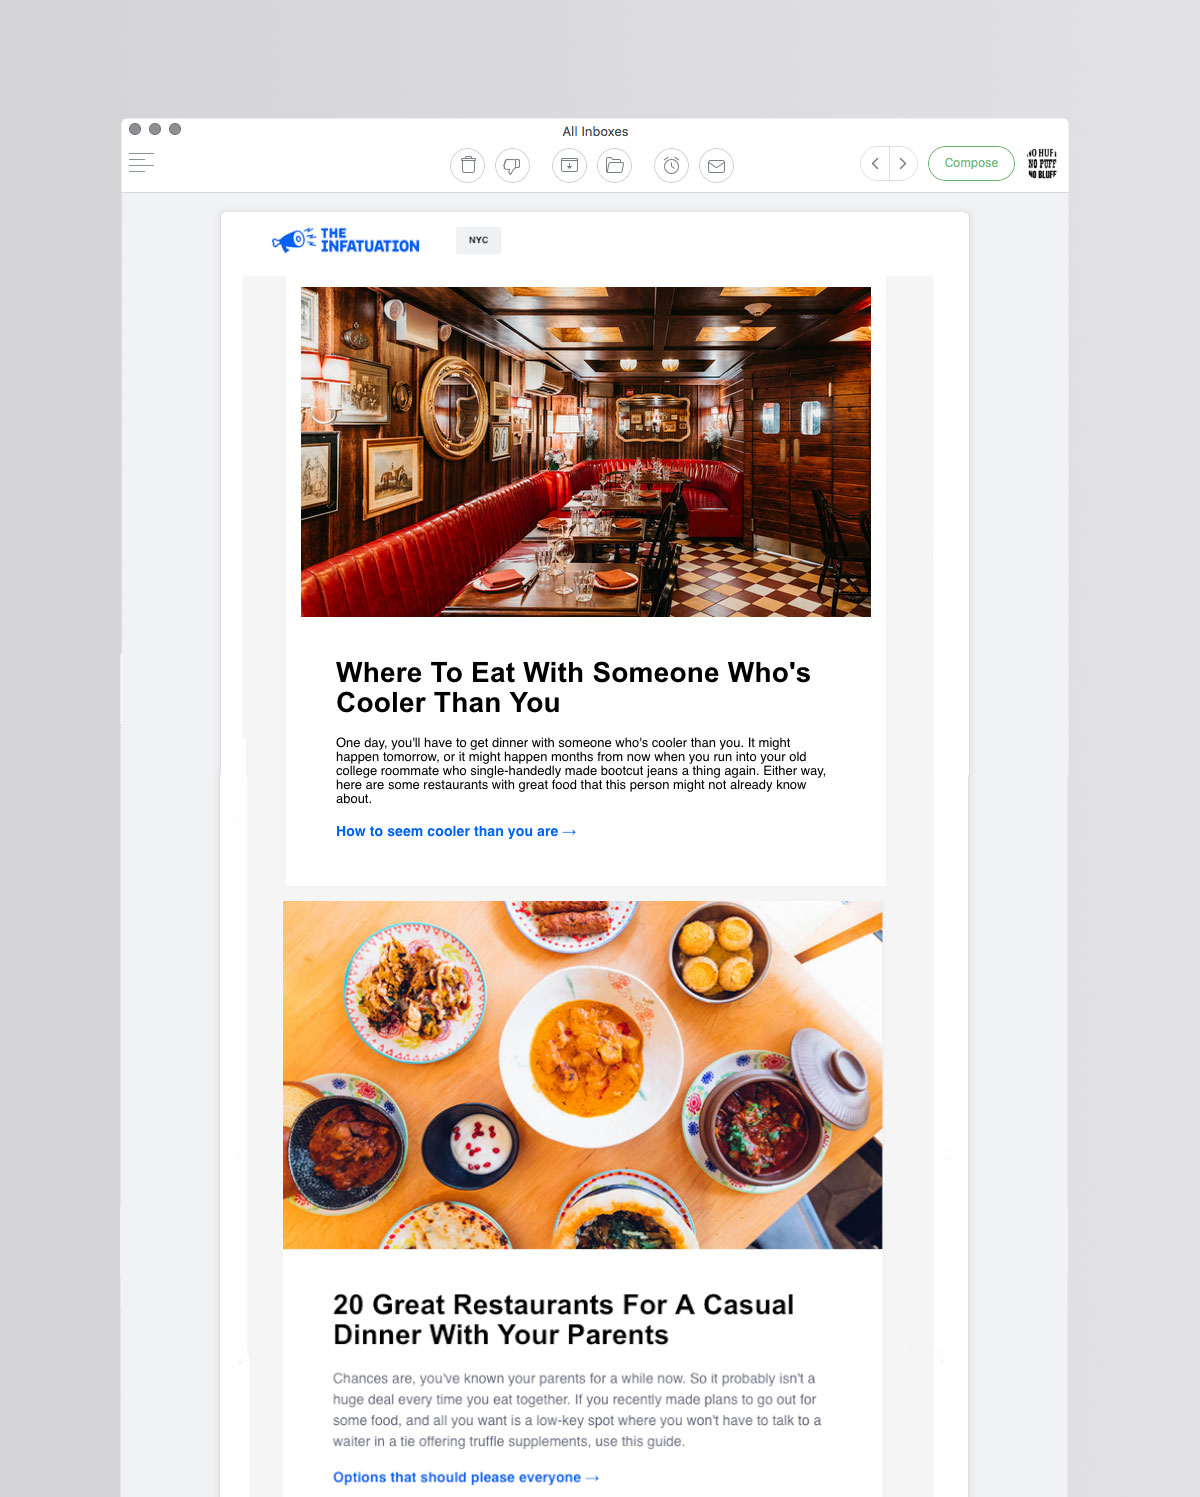 Email newsletter from Infatuation NYC.